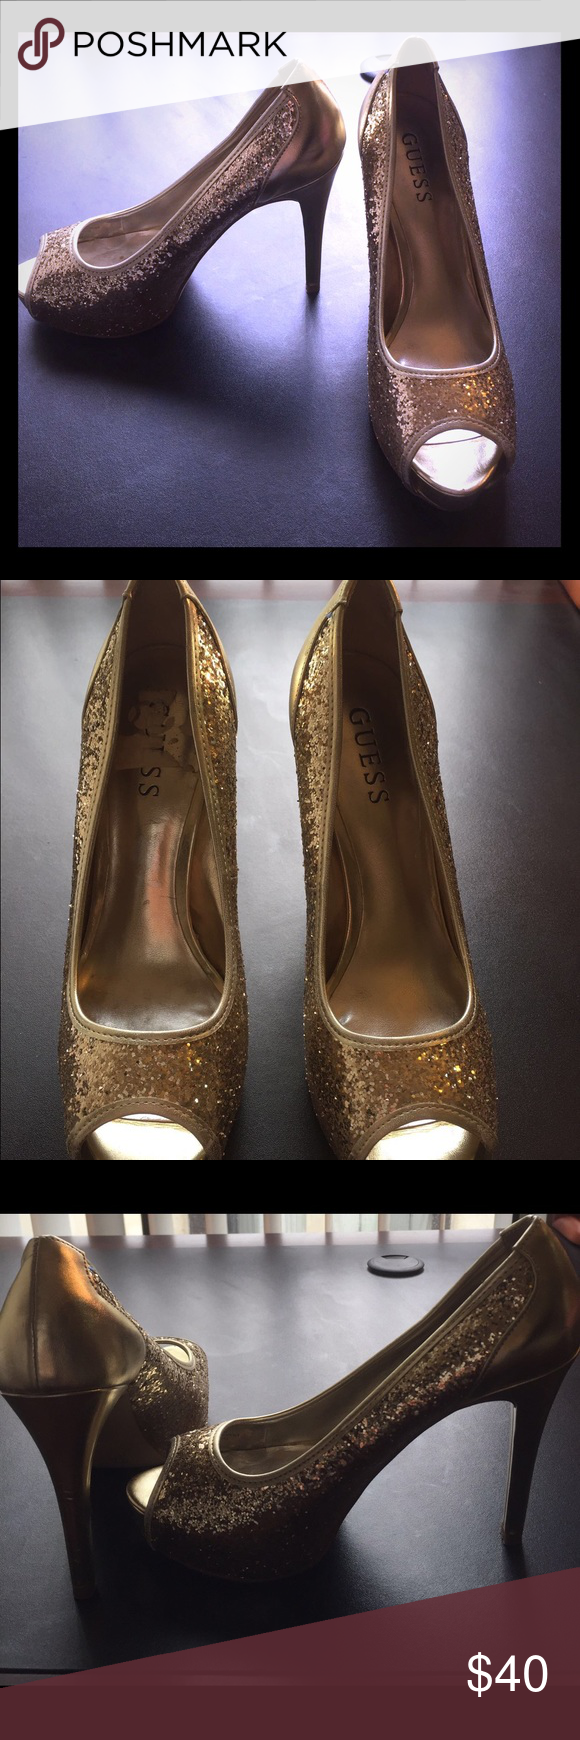 Guess shoes These are Guess, size 6.5, high heel, gold glitter shoes. Worn once or twice. Small scuffs on heels. Guess Shoes Heels